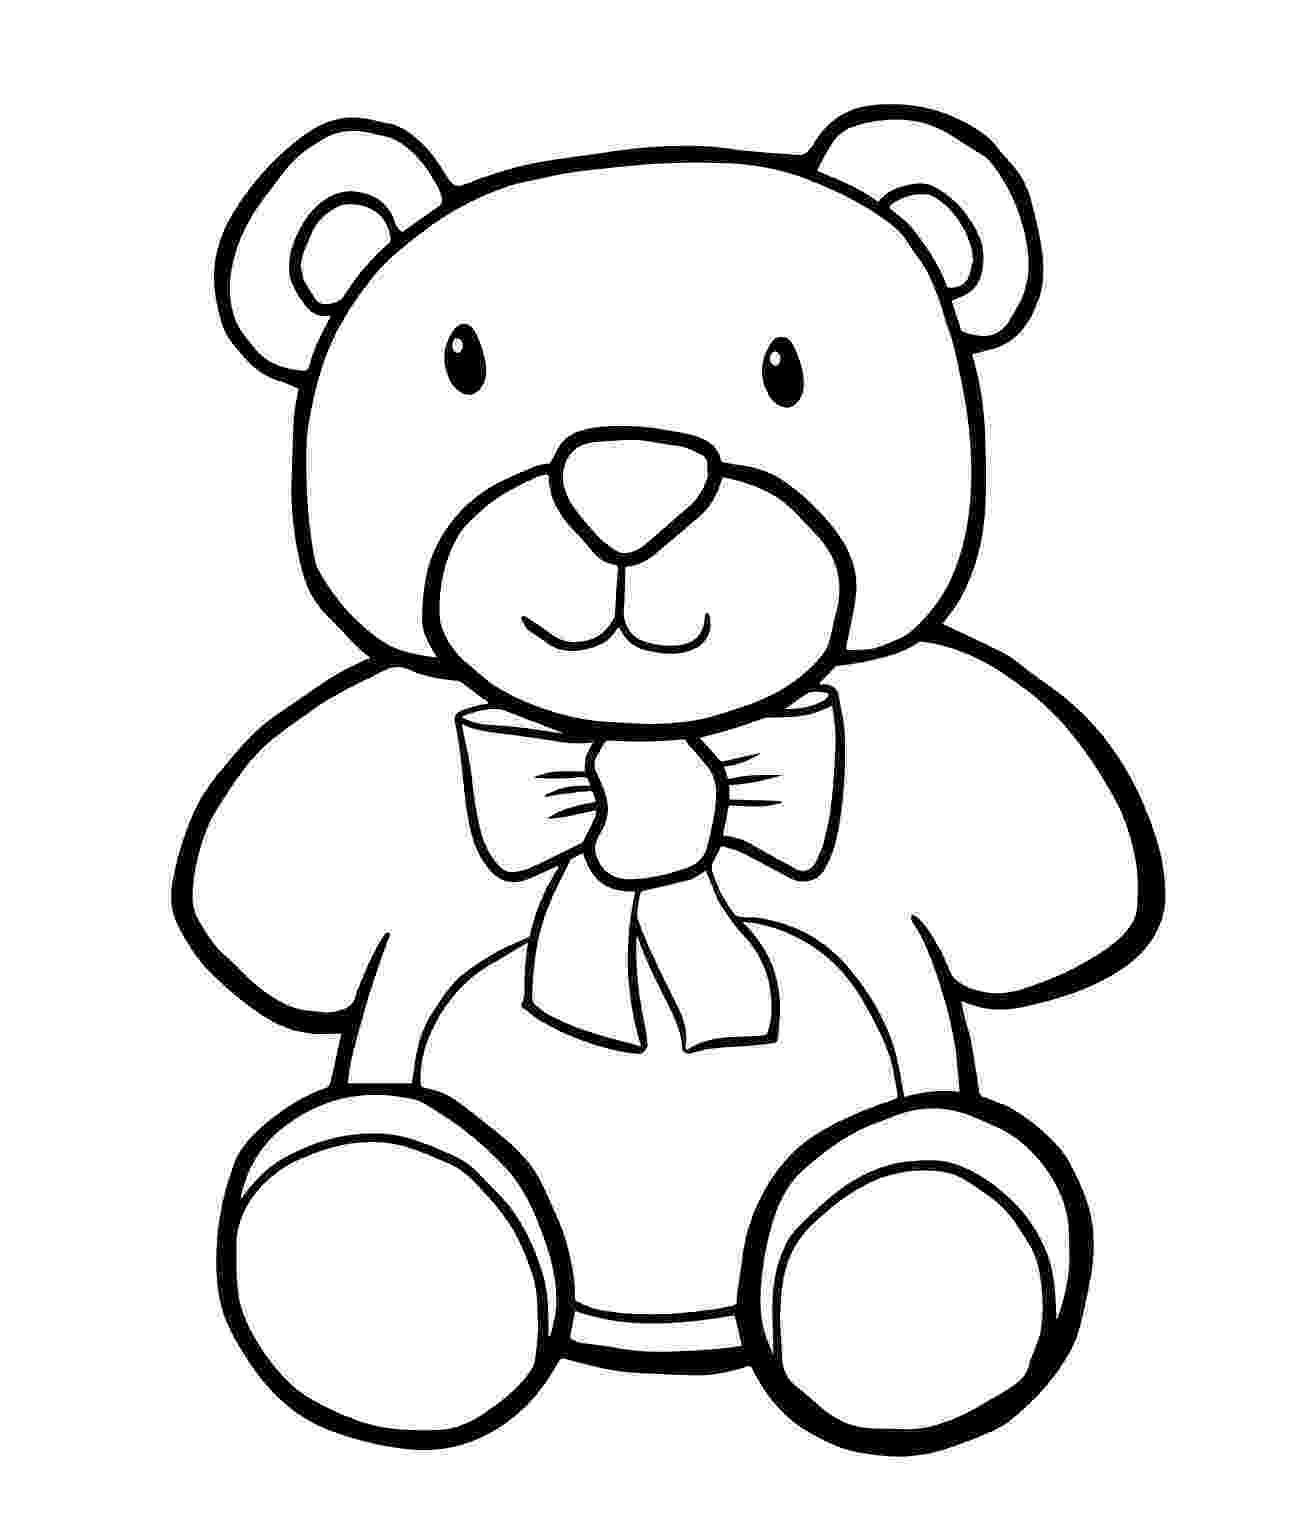 coloring page bear top 10 free printable bear coloring pages online page bear coloring